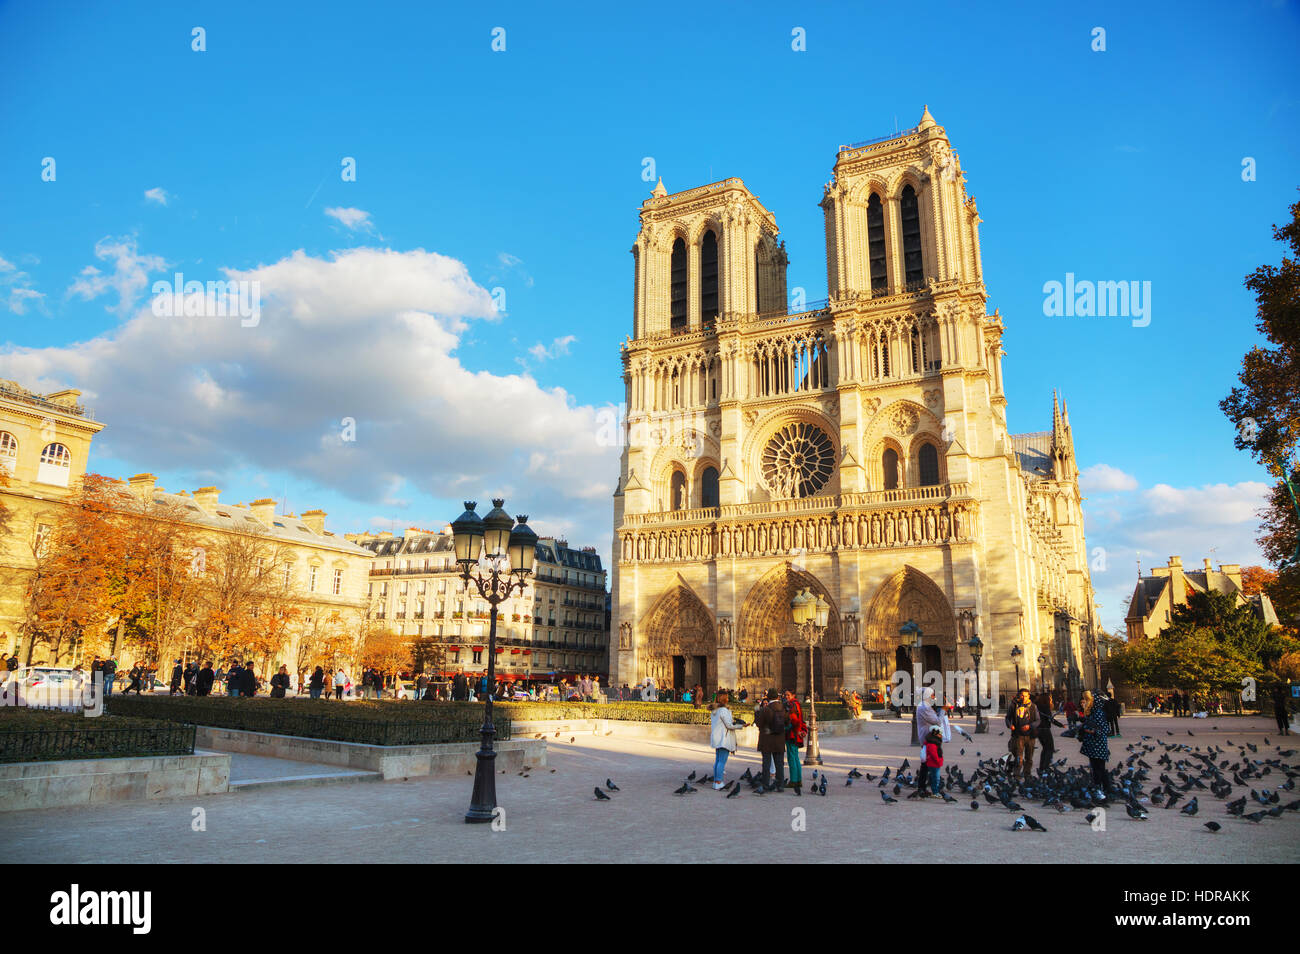 PARIS - NOVEMBER 2: Notre Dame de Paris cathedral on November 2, 2016 in Paris, France. It's the finest example - Stock Image